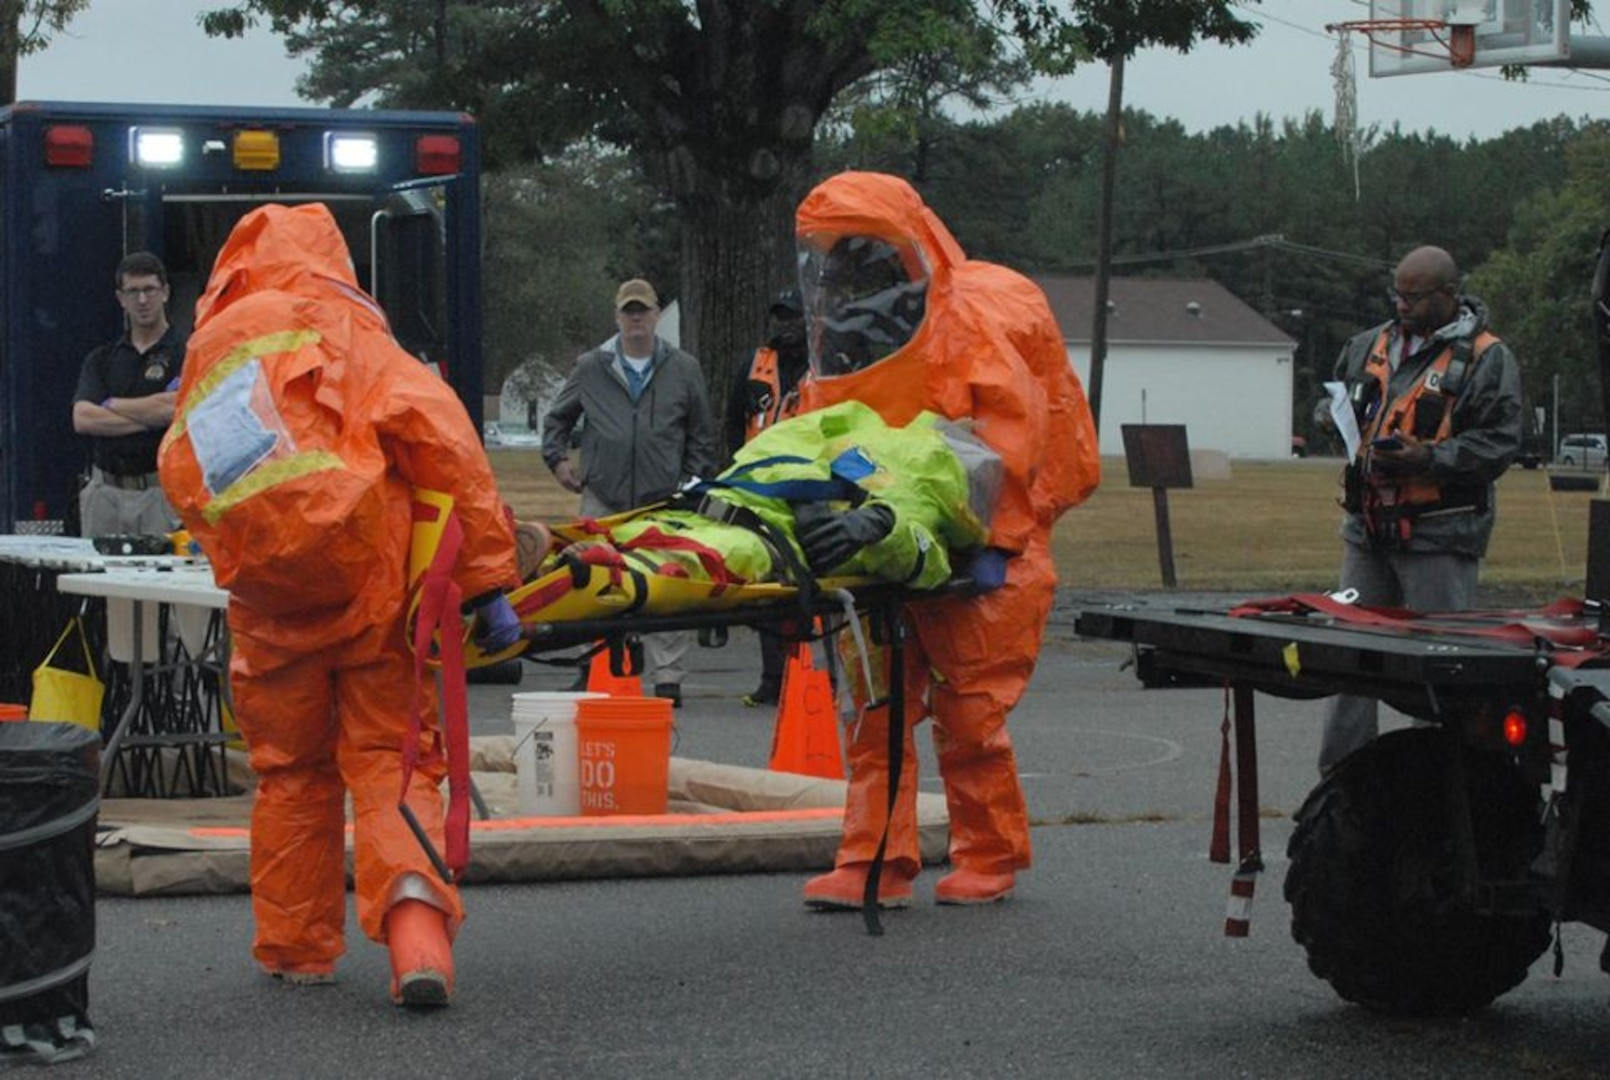 Members of the District of Columbia National Guard's 33rd Civil Support Team work rescue a simulated victim during recent Training Proficiency Evaluation at Fort Lee in Colonial Heights, Va.